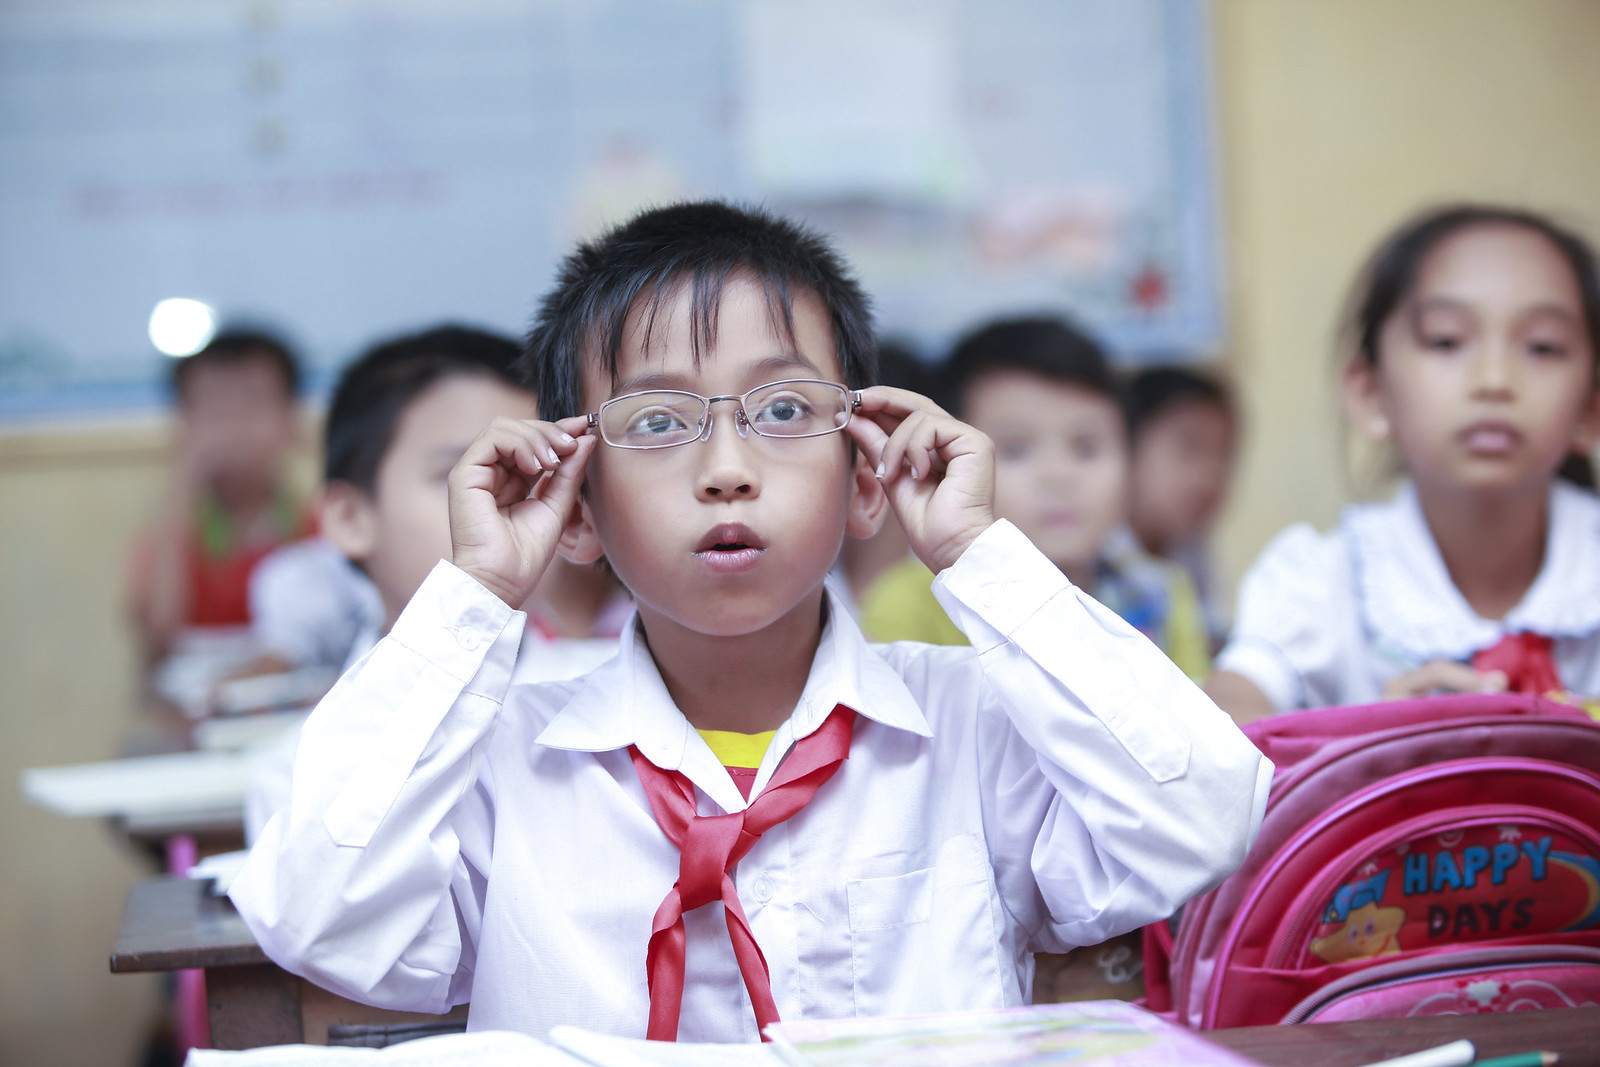 A child surprised to see clearly after wearing new glasses  Submitted by: Nguyen Thi Quynh Nhu